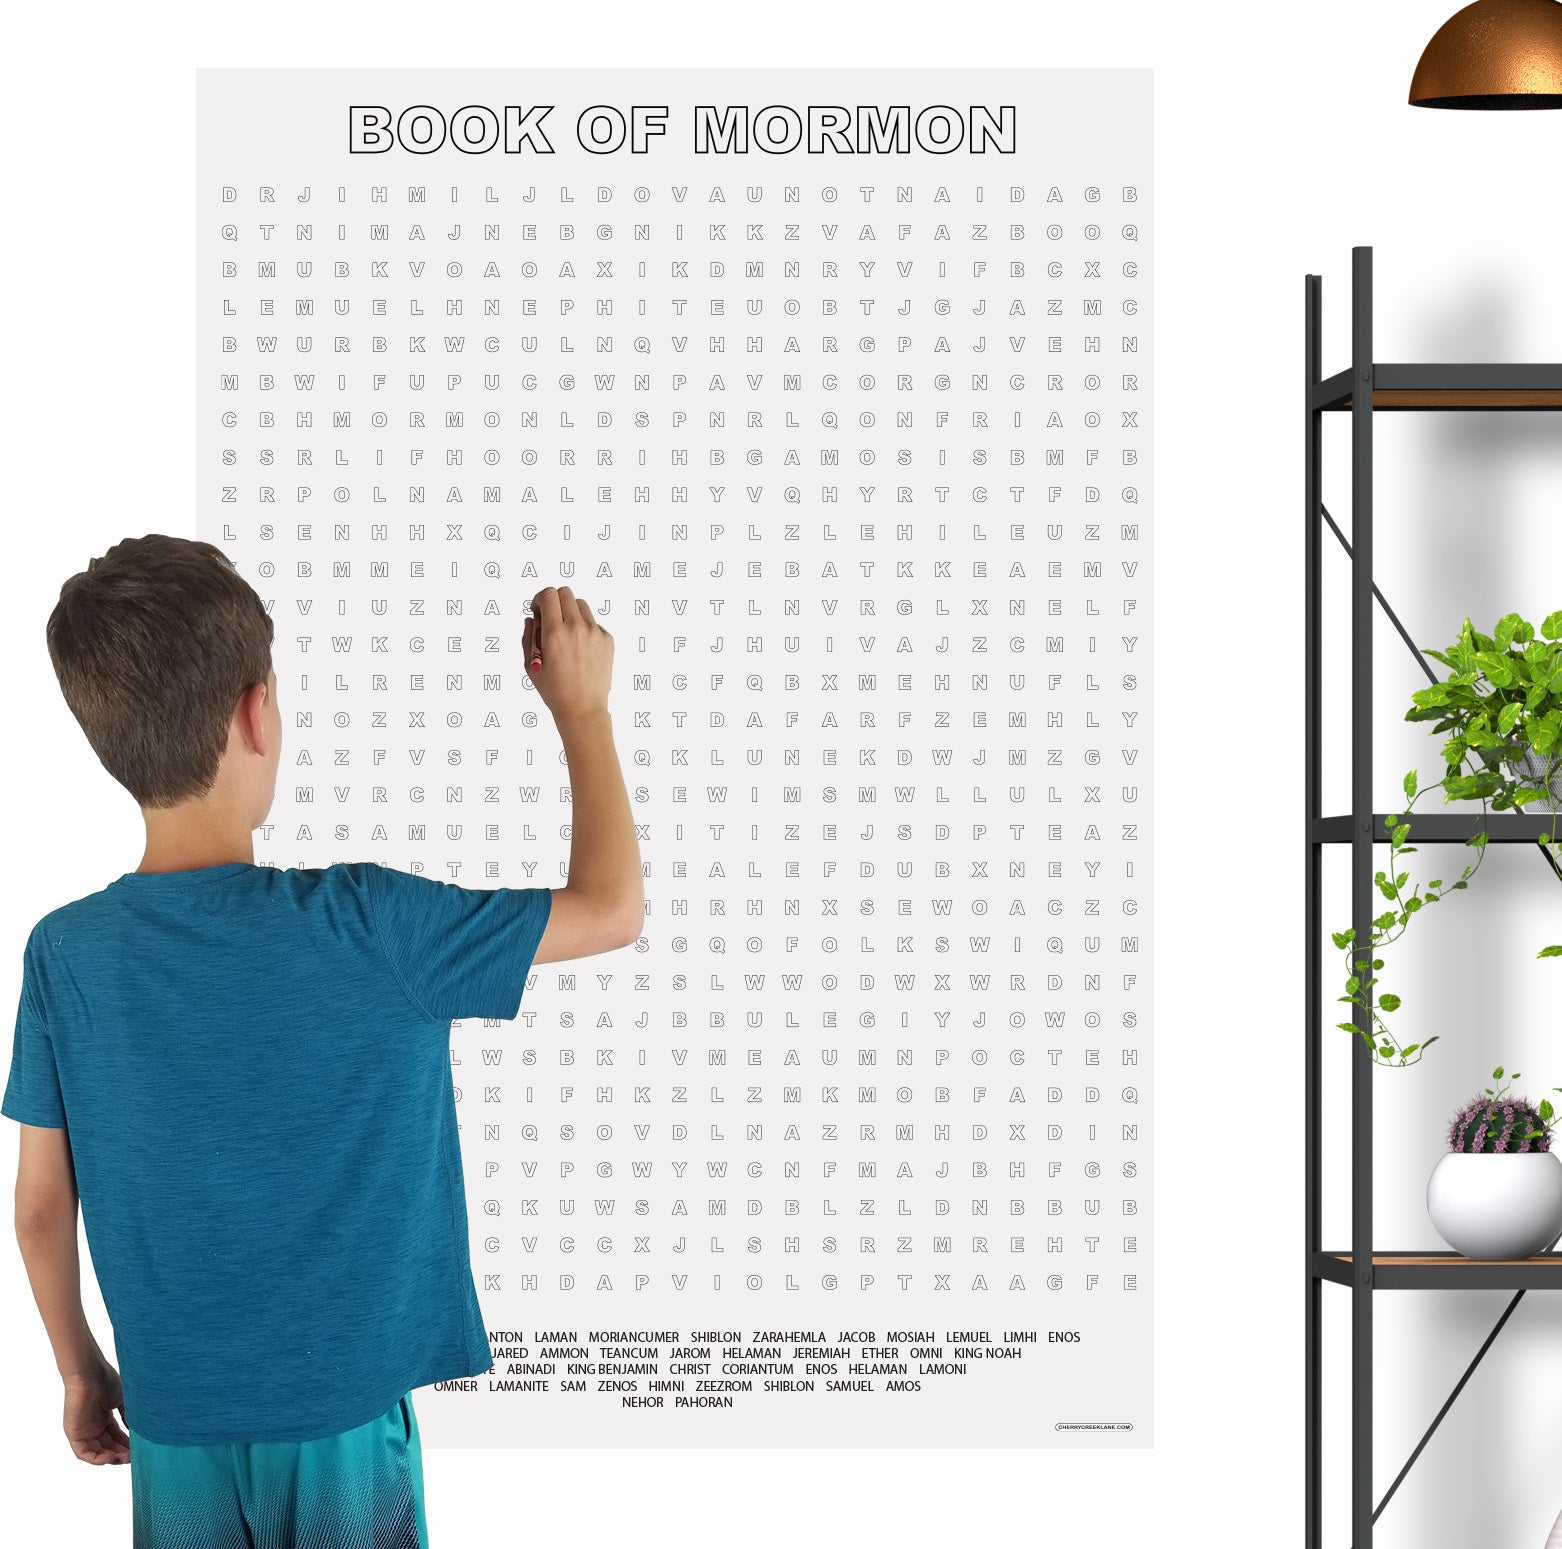 Book Of Mormon Giant Word Search Puzzle